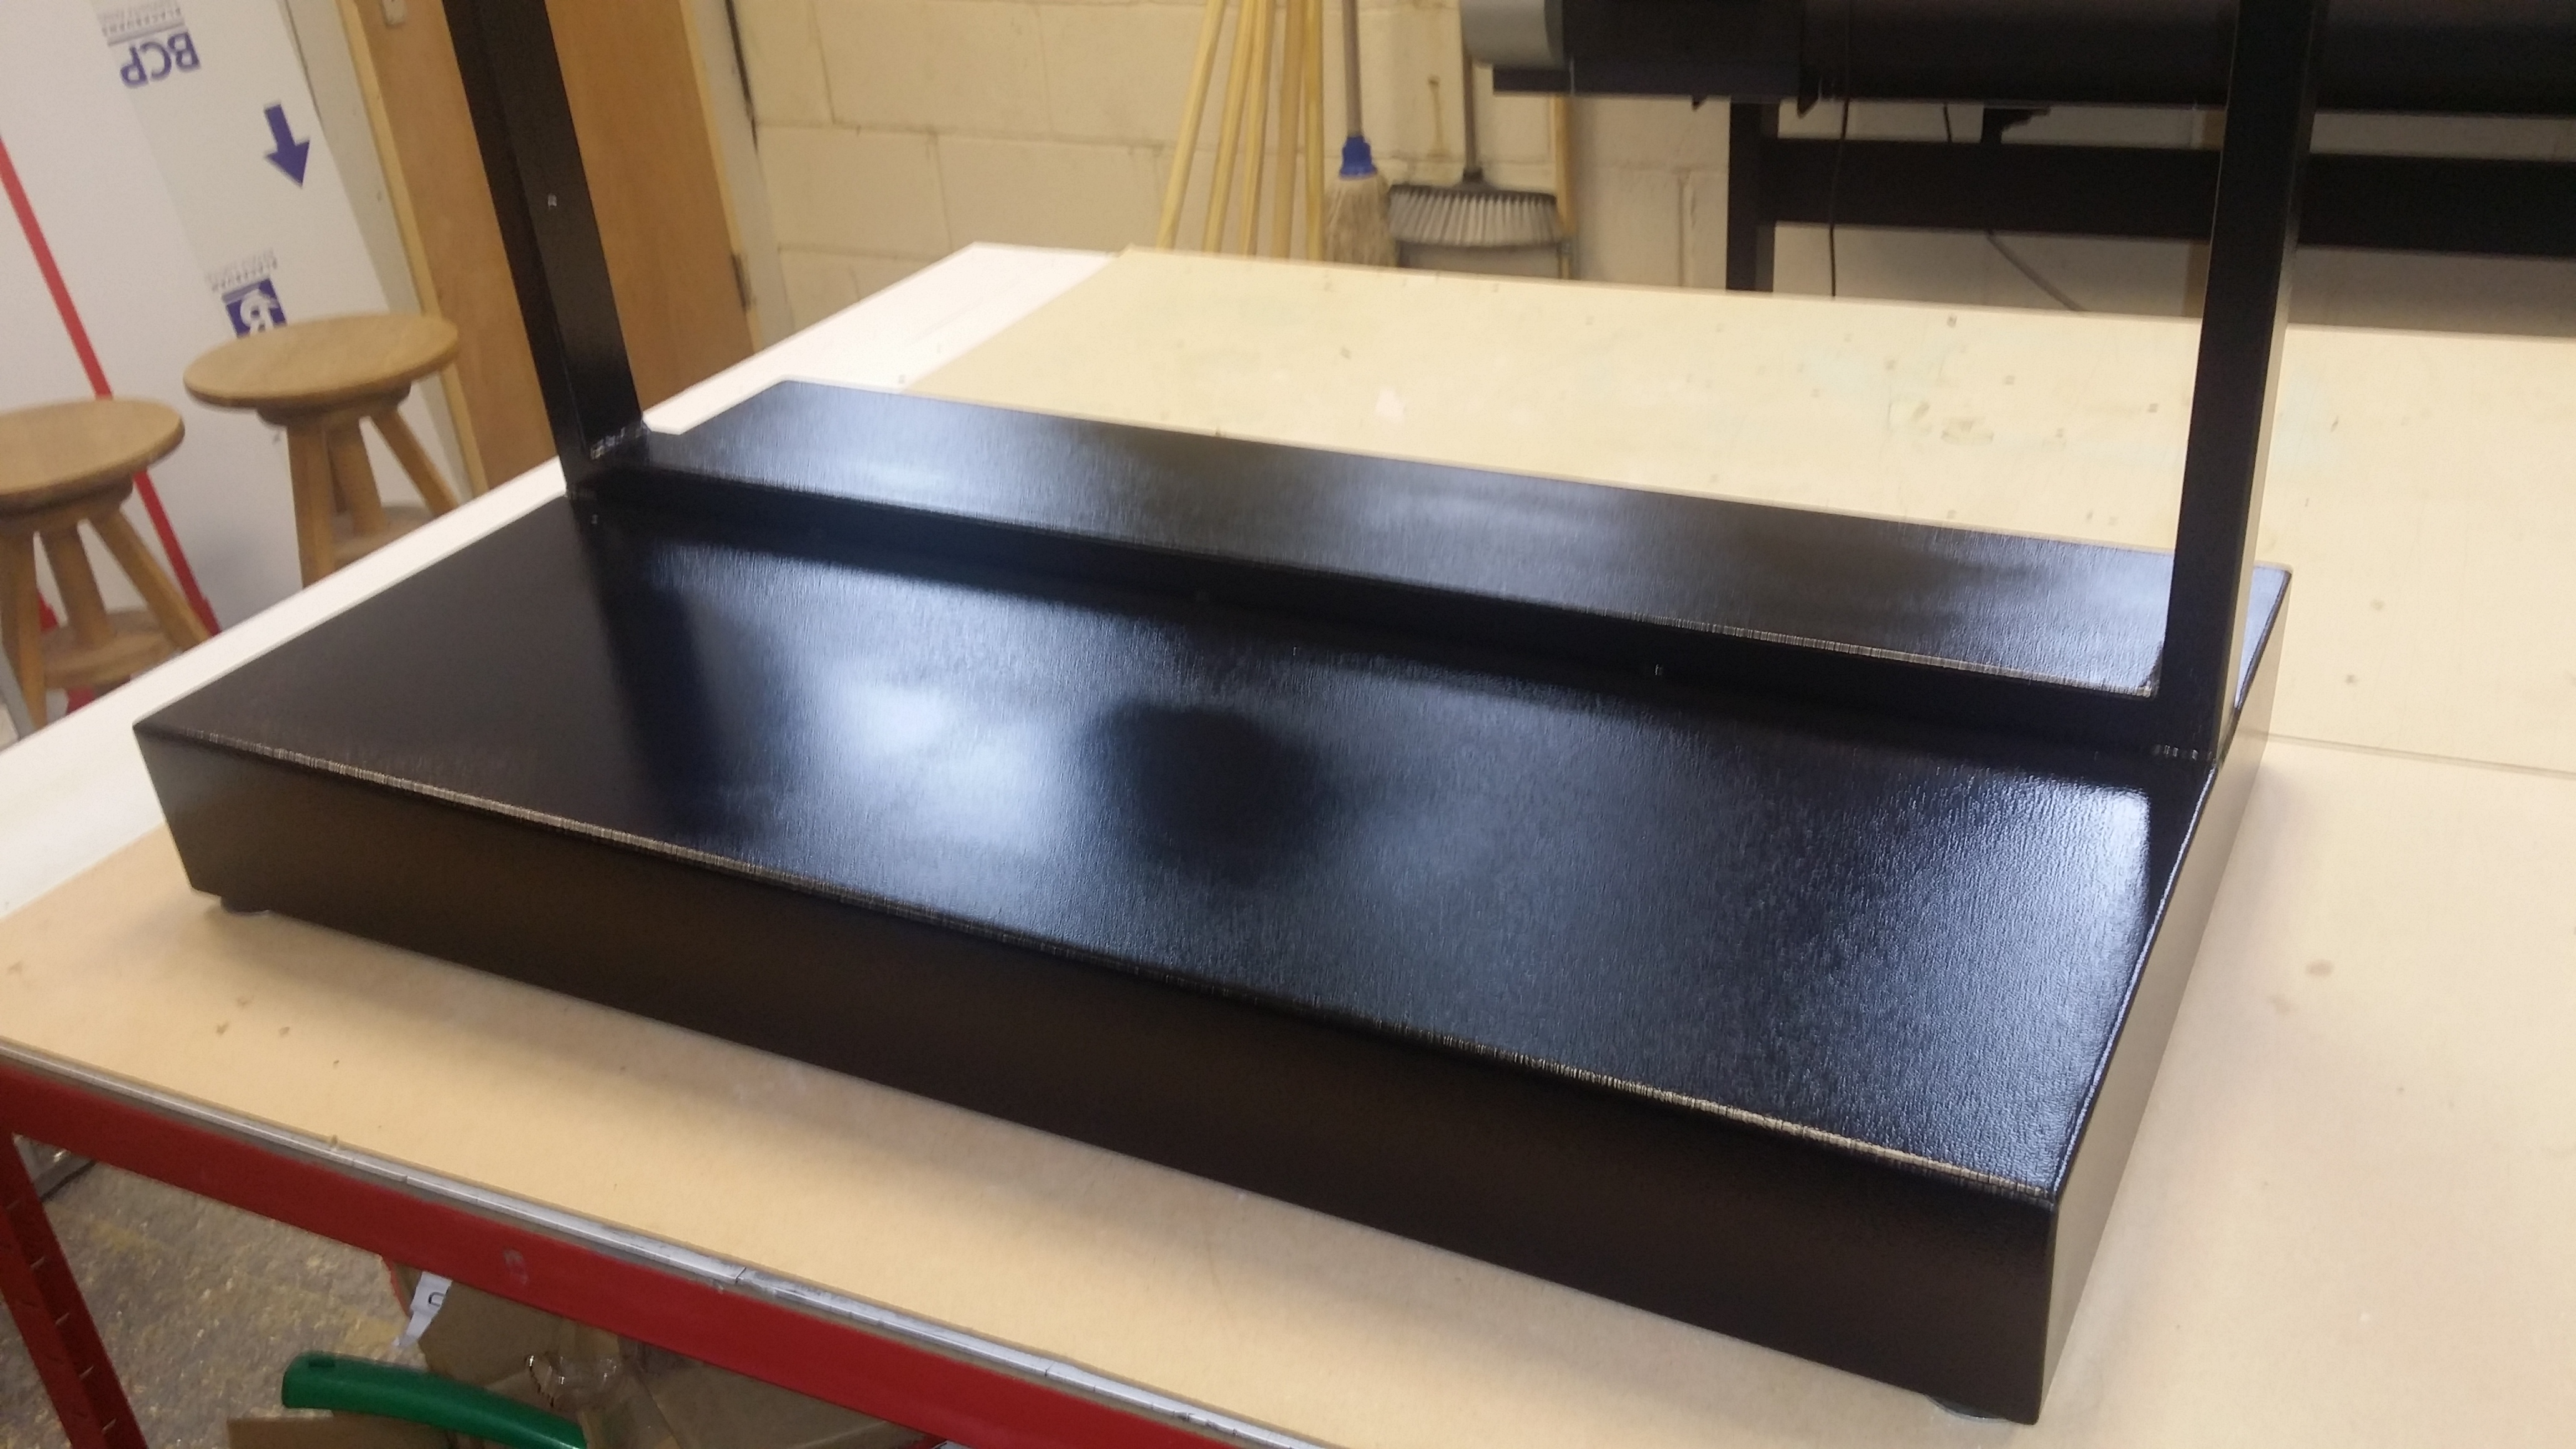 Tool shadow board free standing frame